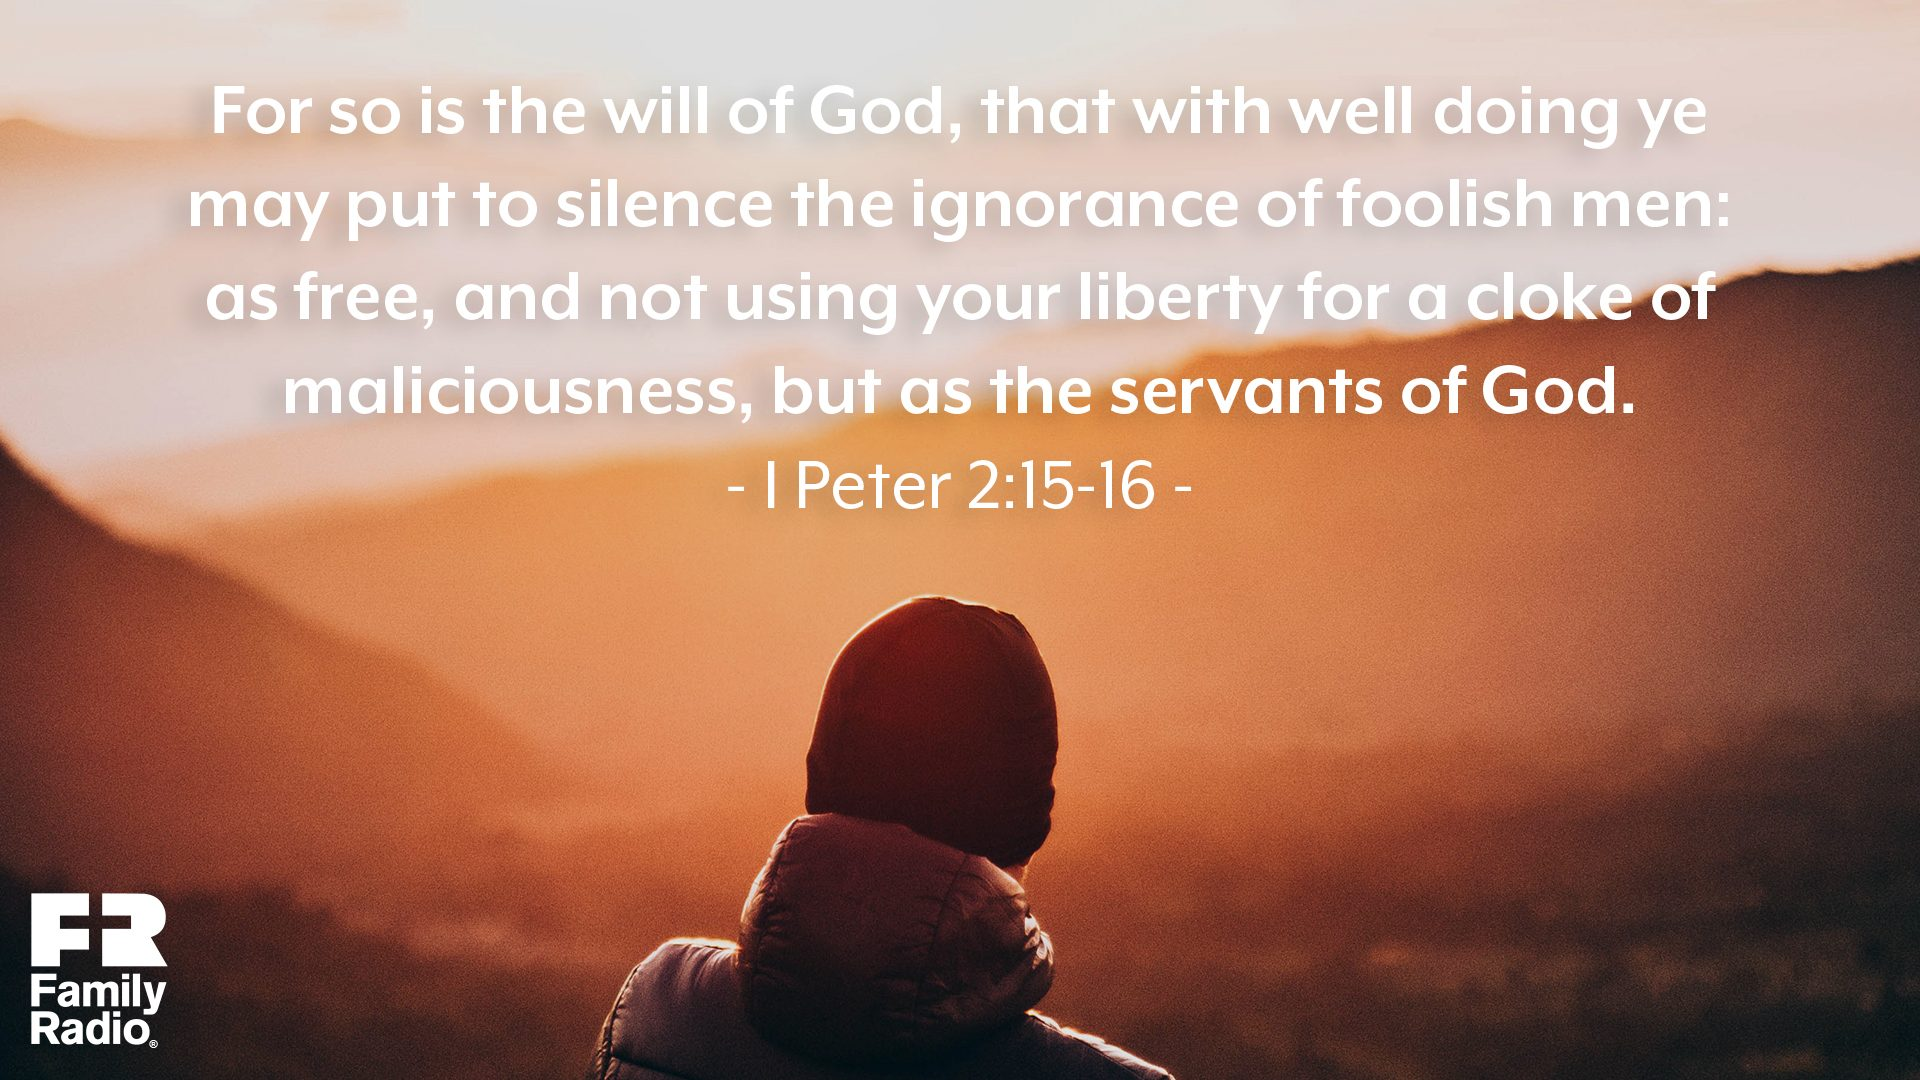 """For so is the will of God, that with well doing ye may put to silence the ignorance of foolish men: As free, and not using your liberty for a cloke of maliciousness, but as the servants of God."""